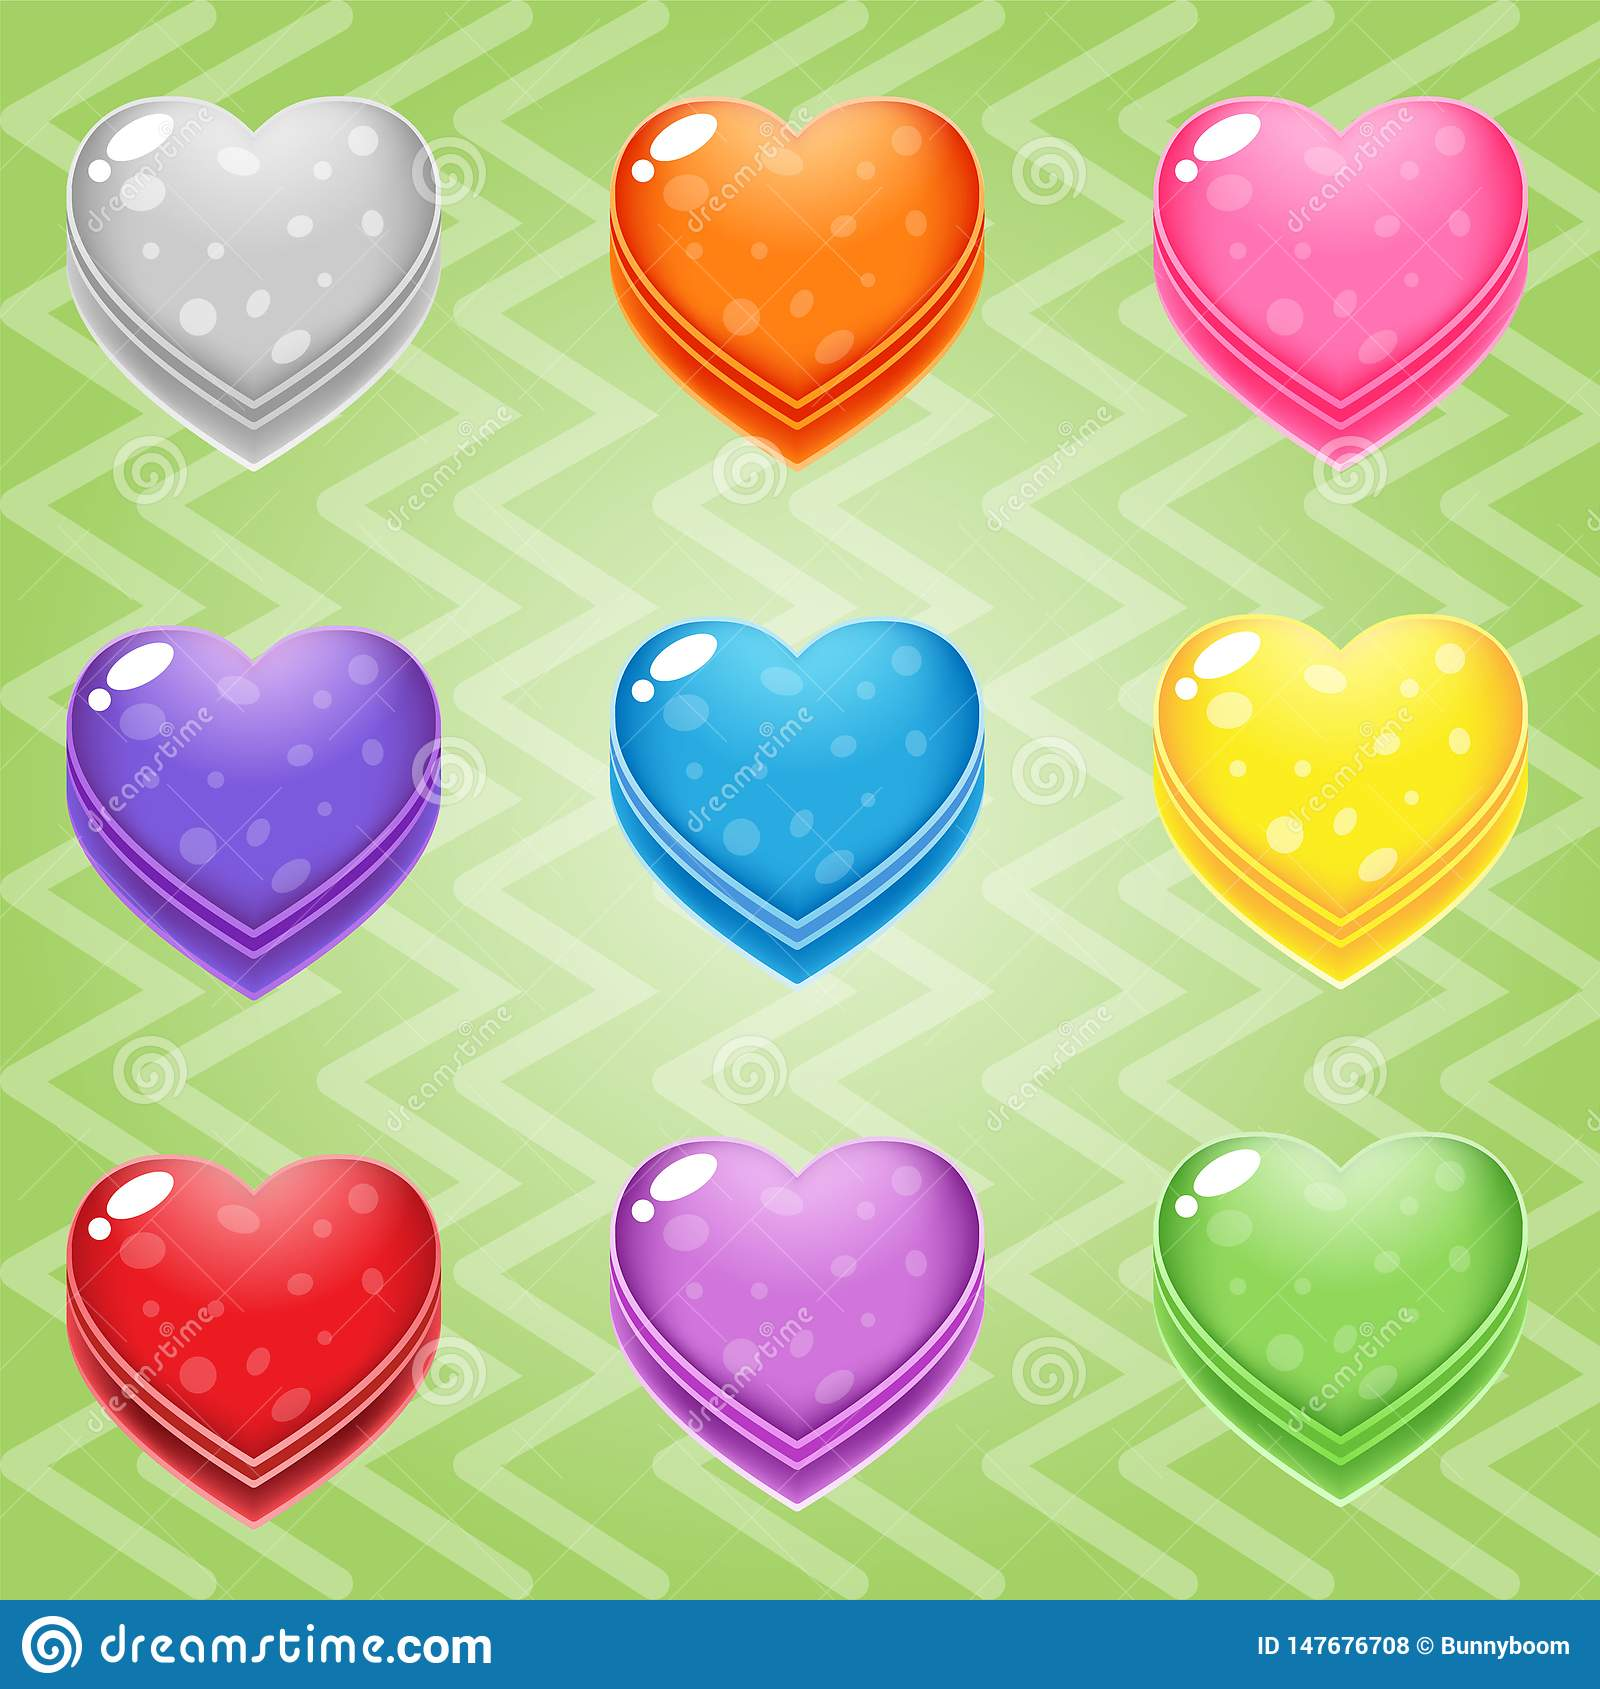 Sweet candy match3 Heart block puzzle button glossy jelly.